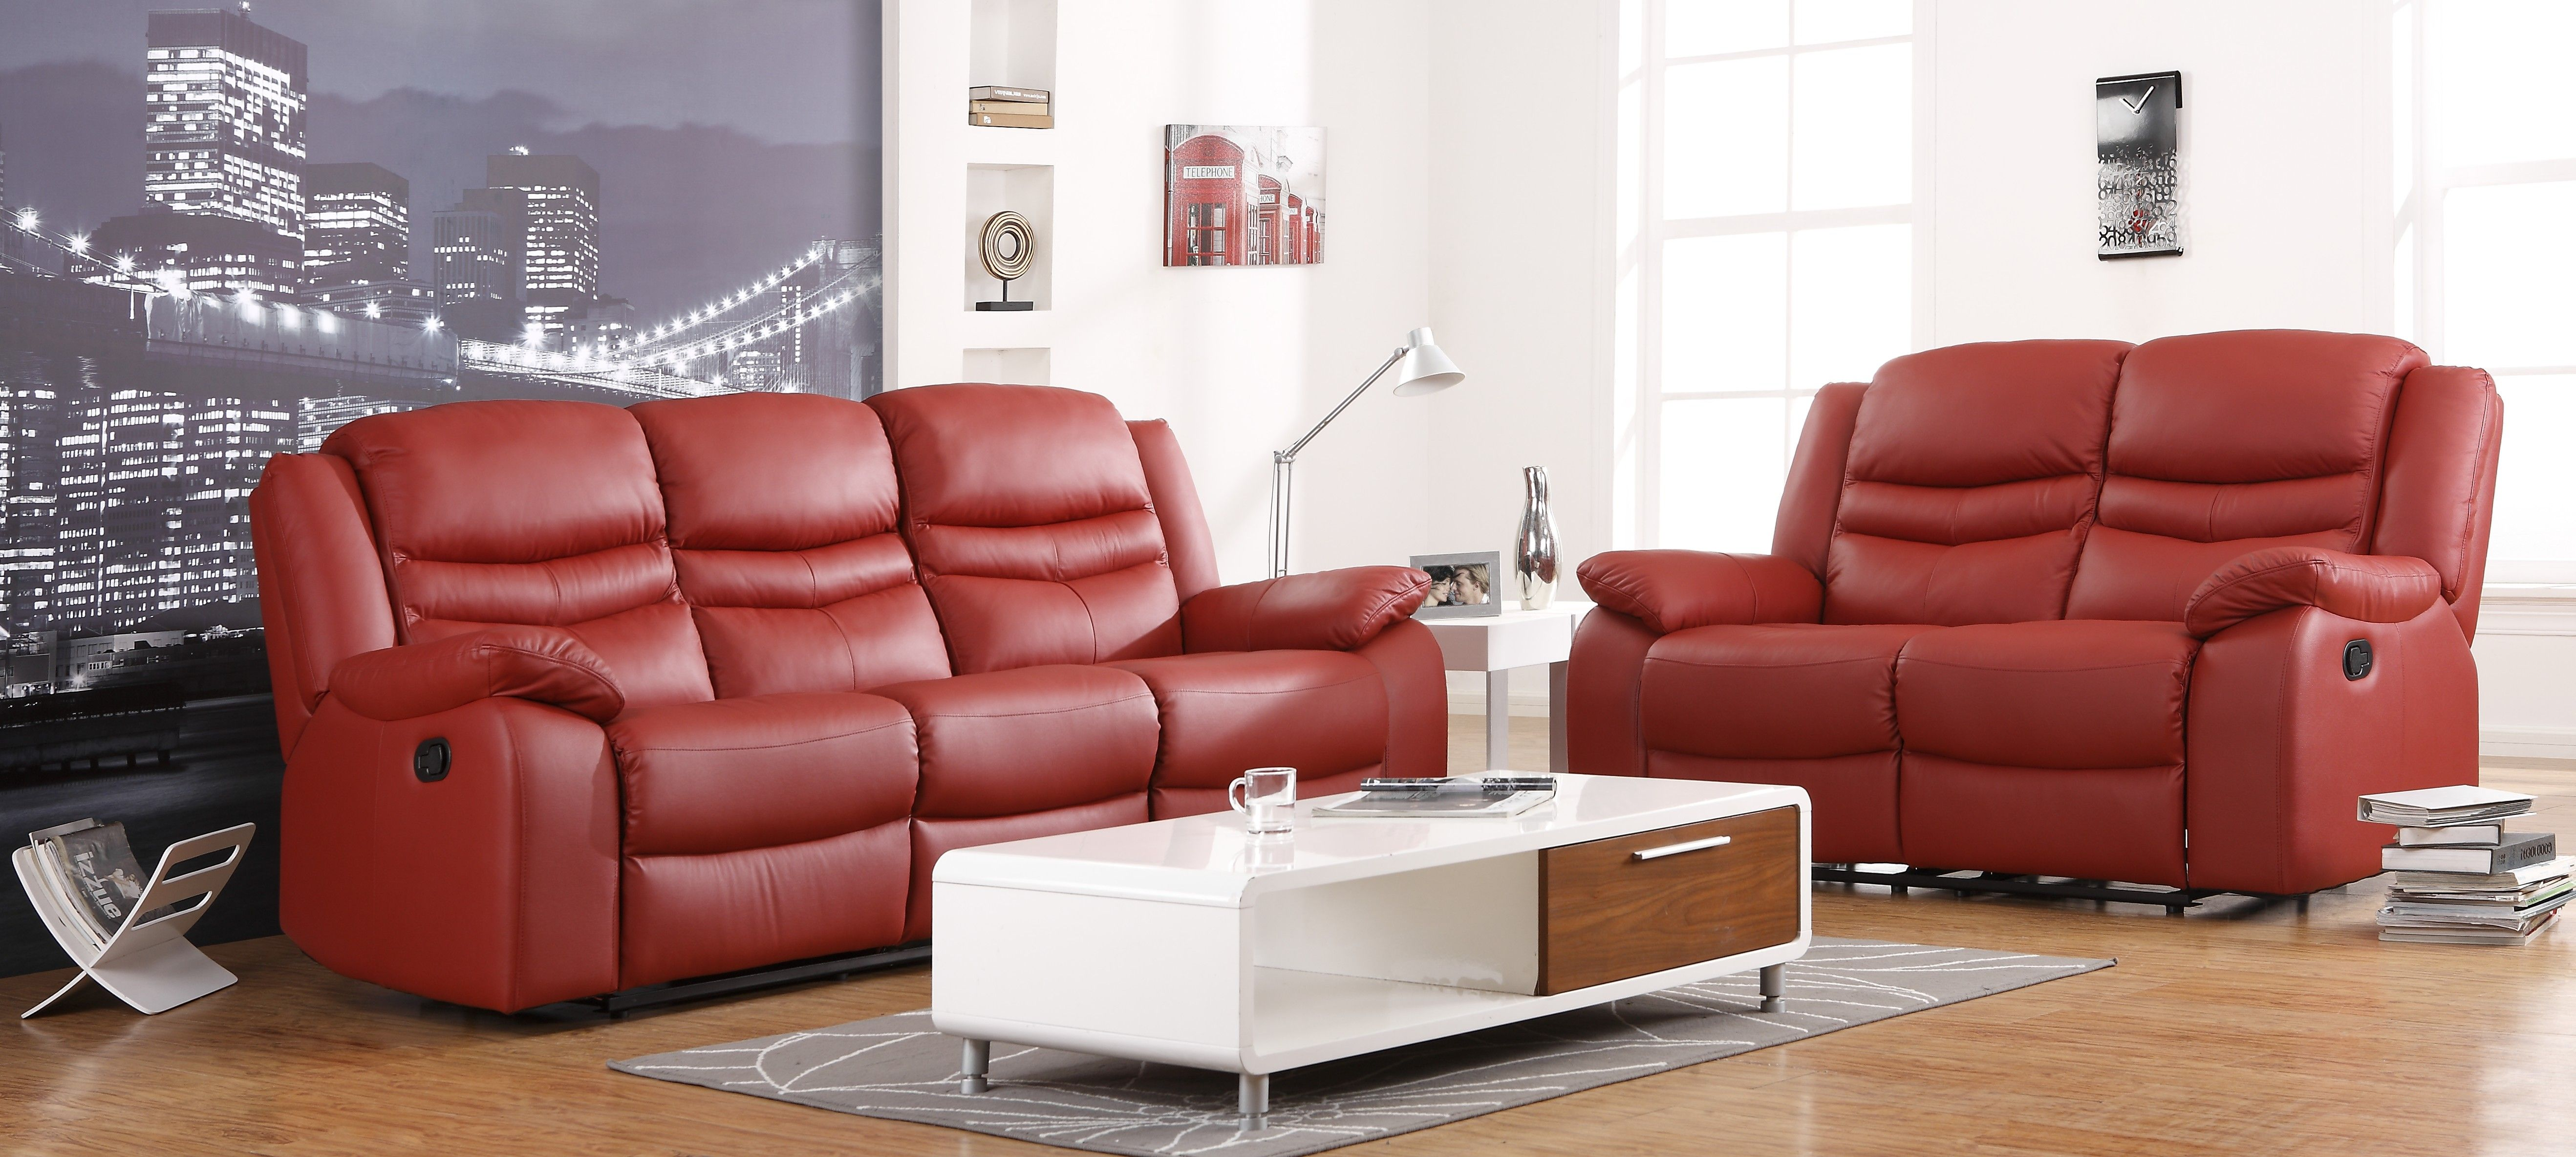 3+2 Seater Red Leather Sofa